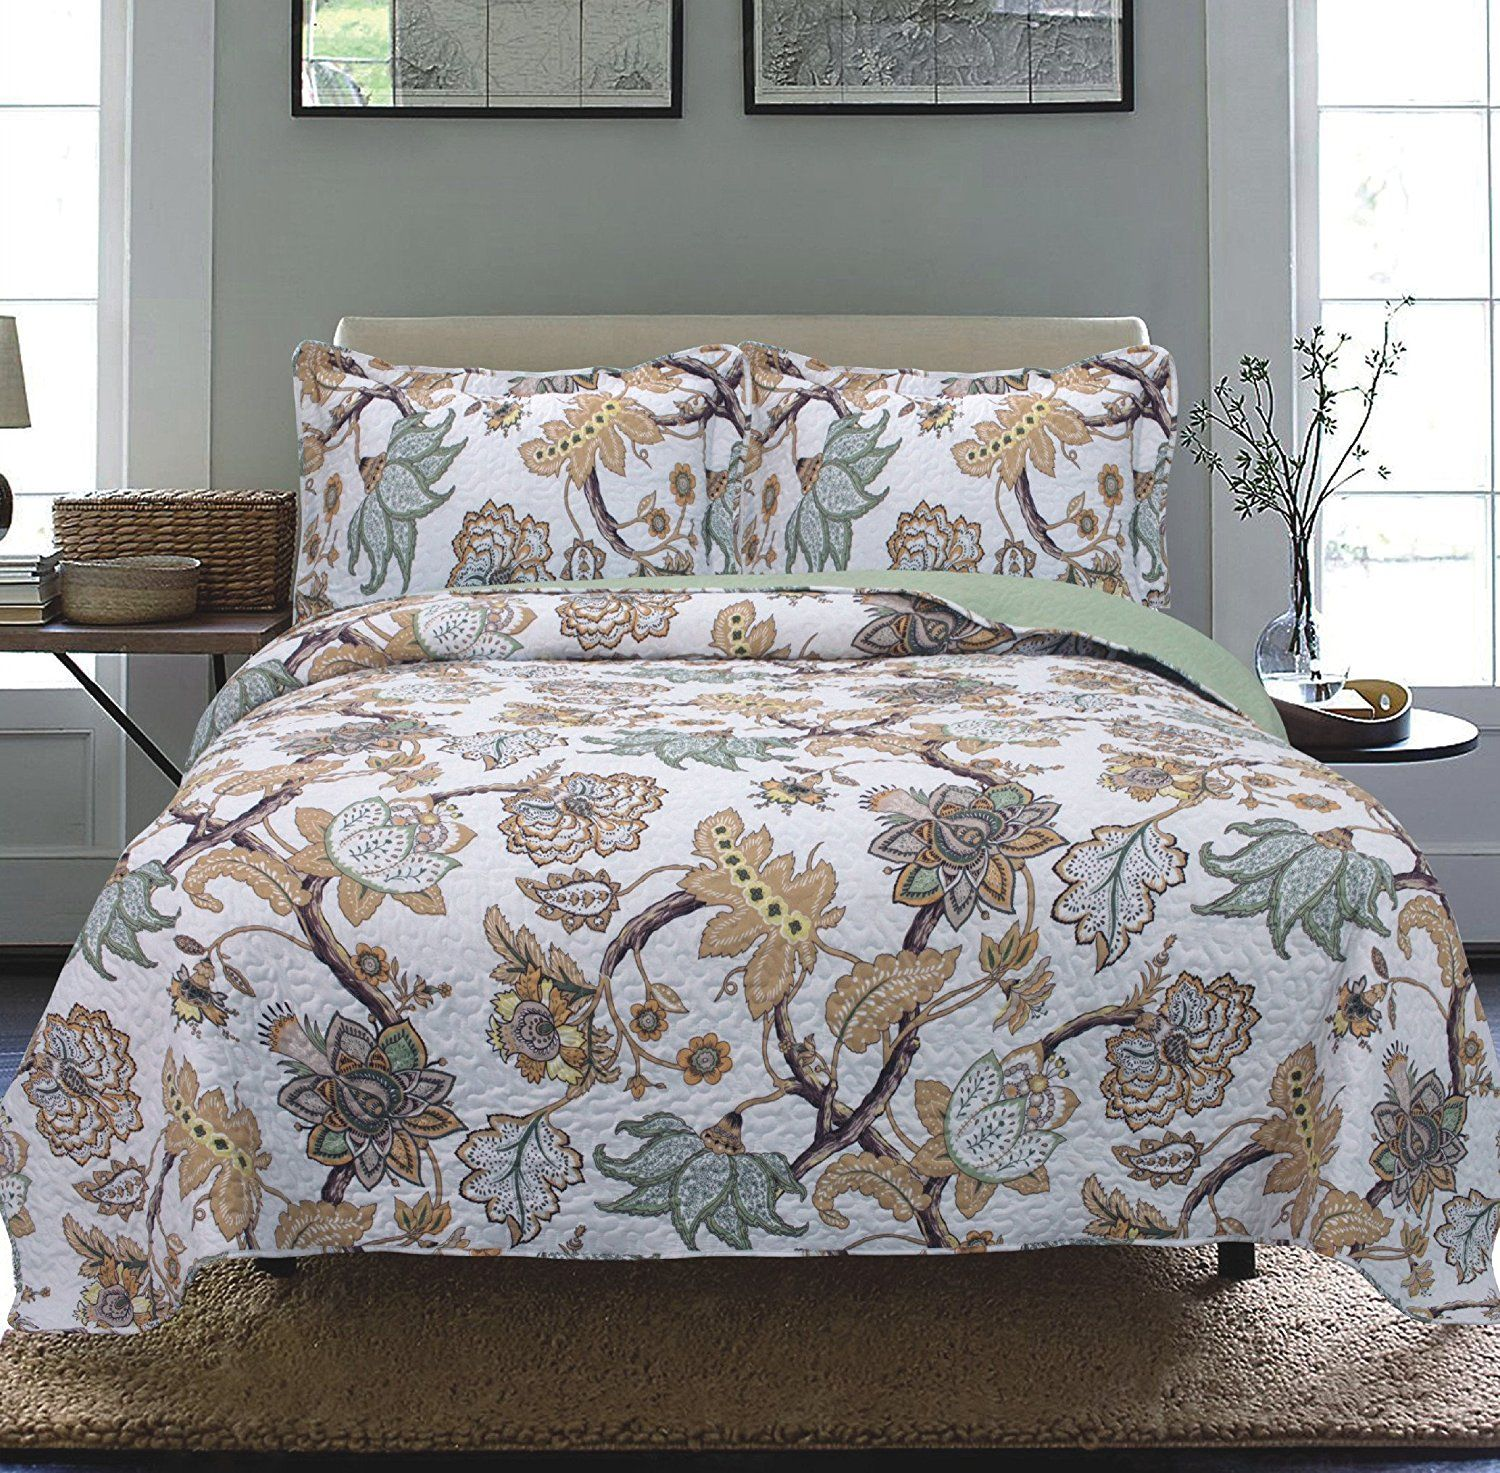 Tagesdecke Modern Modern Floral Bedspread Coverlet Cal King Ease Bedding With